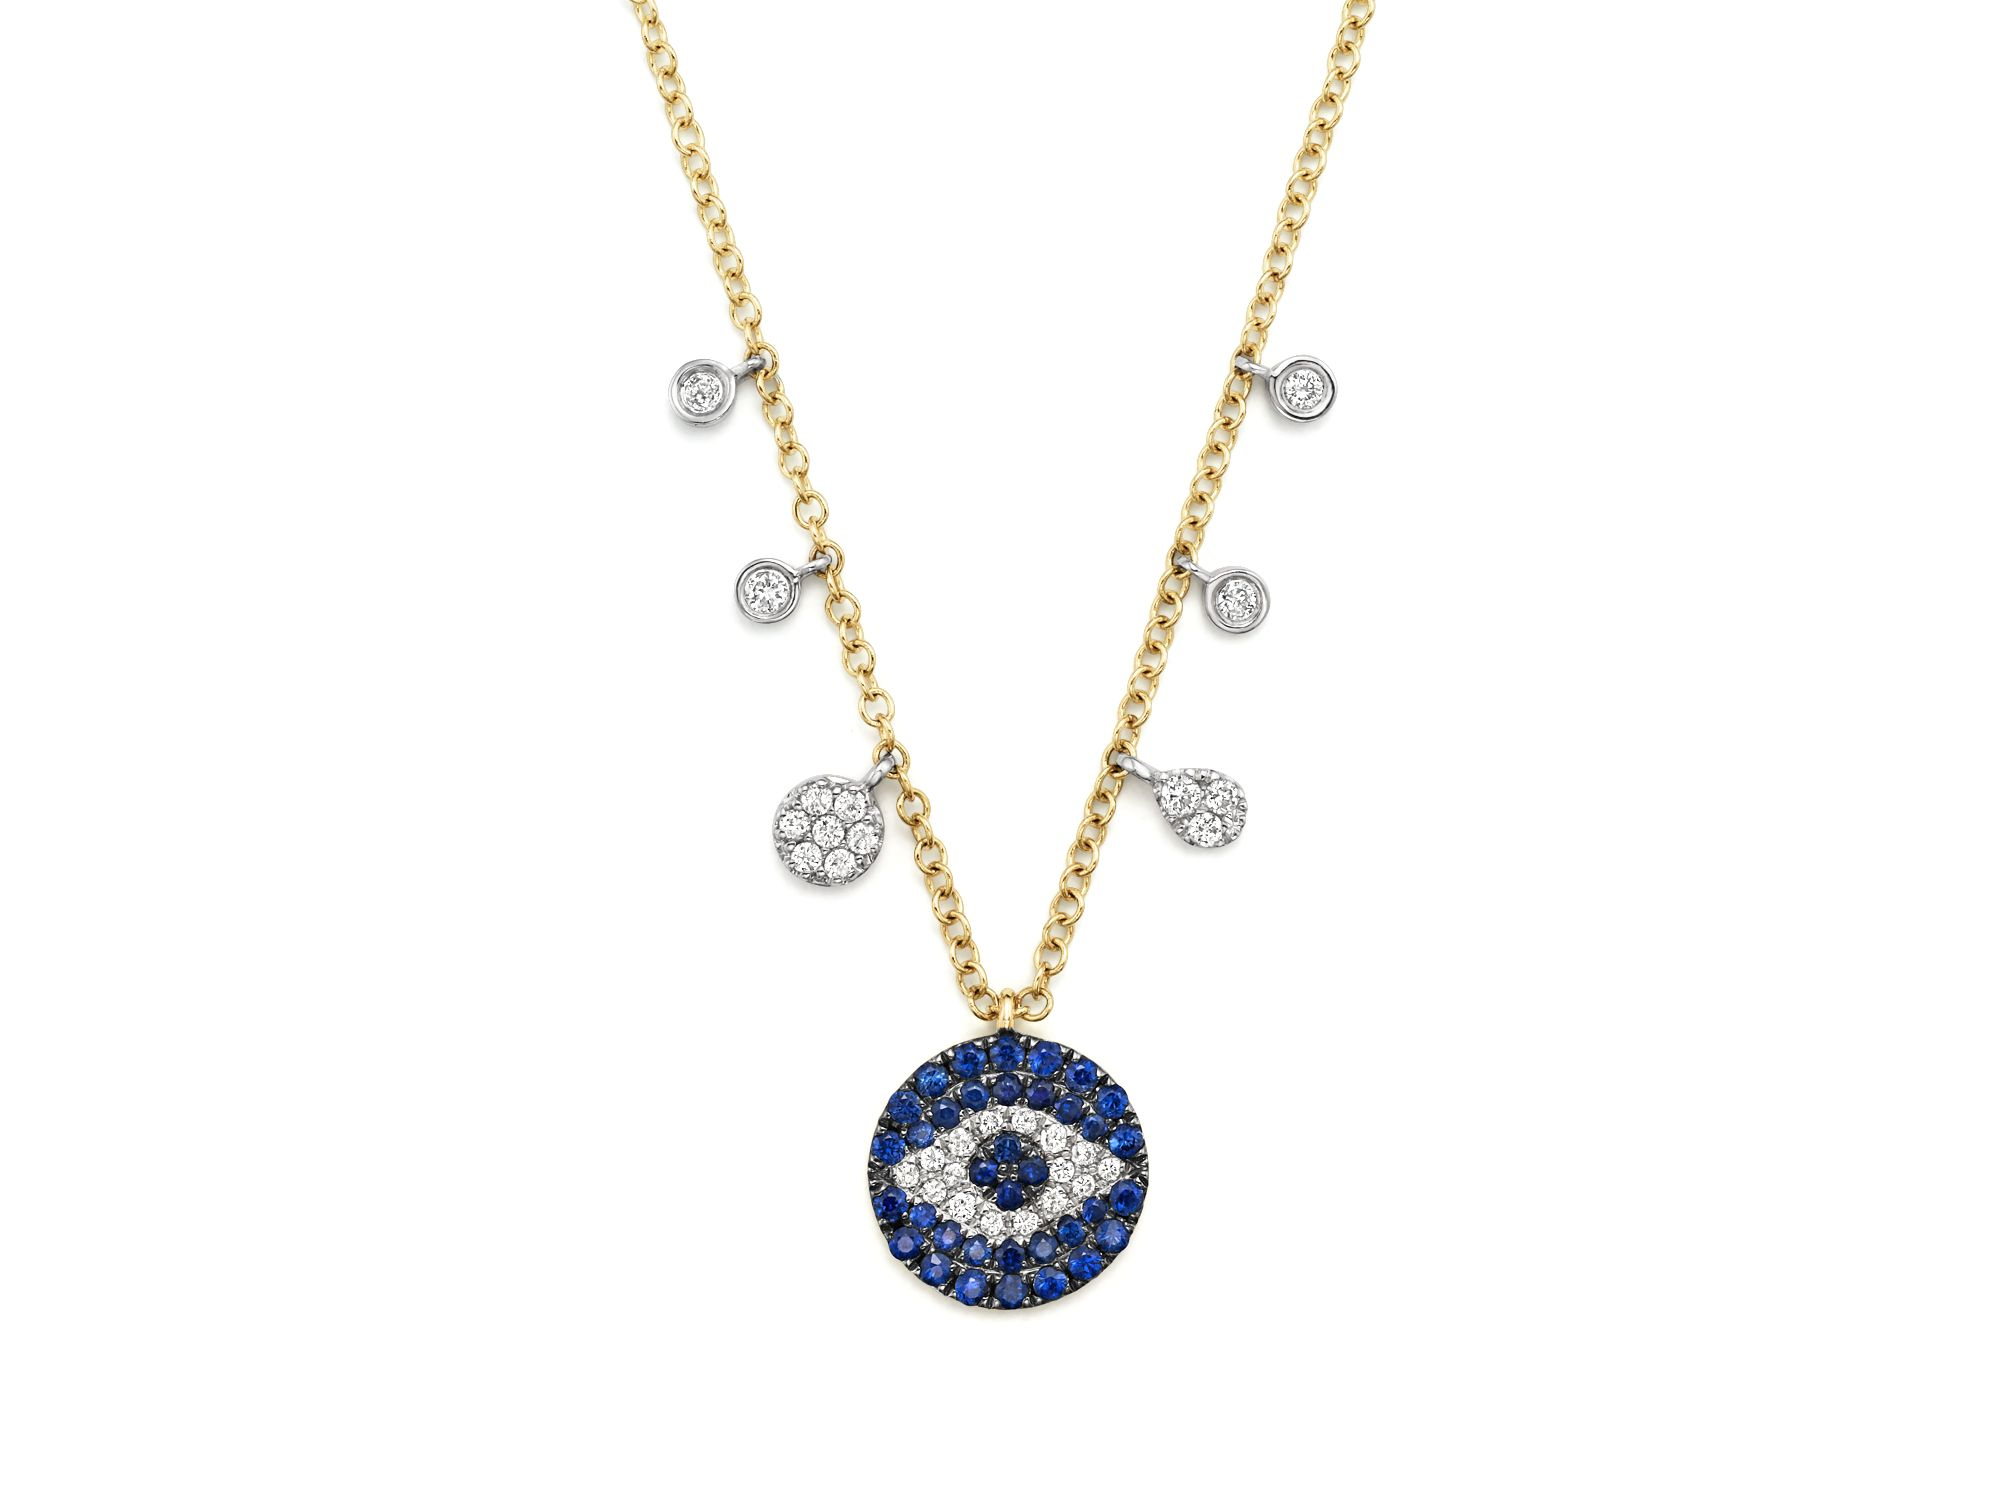 meira t sapphire and diamond evil eye necklace in 14k. Black Bedroom Furniture Sets. Home Design Ideas